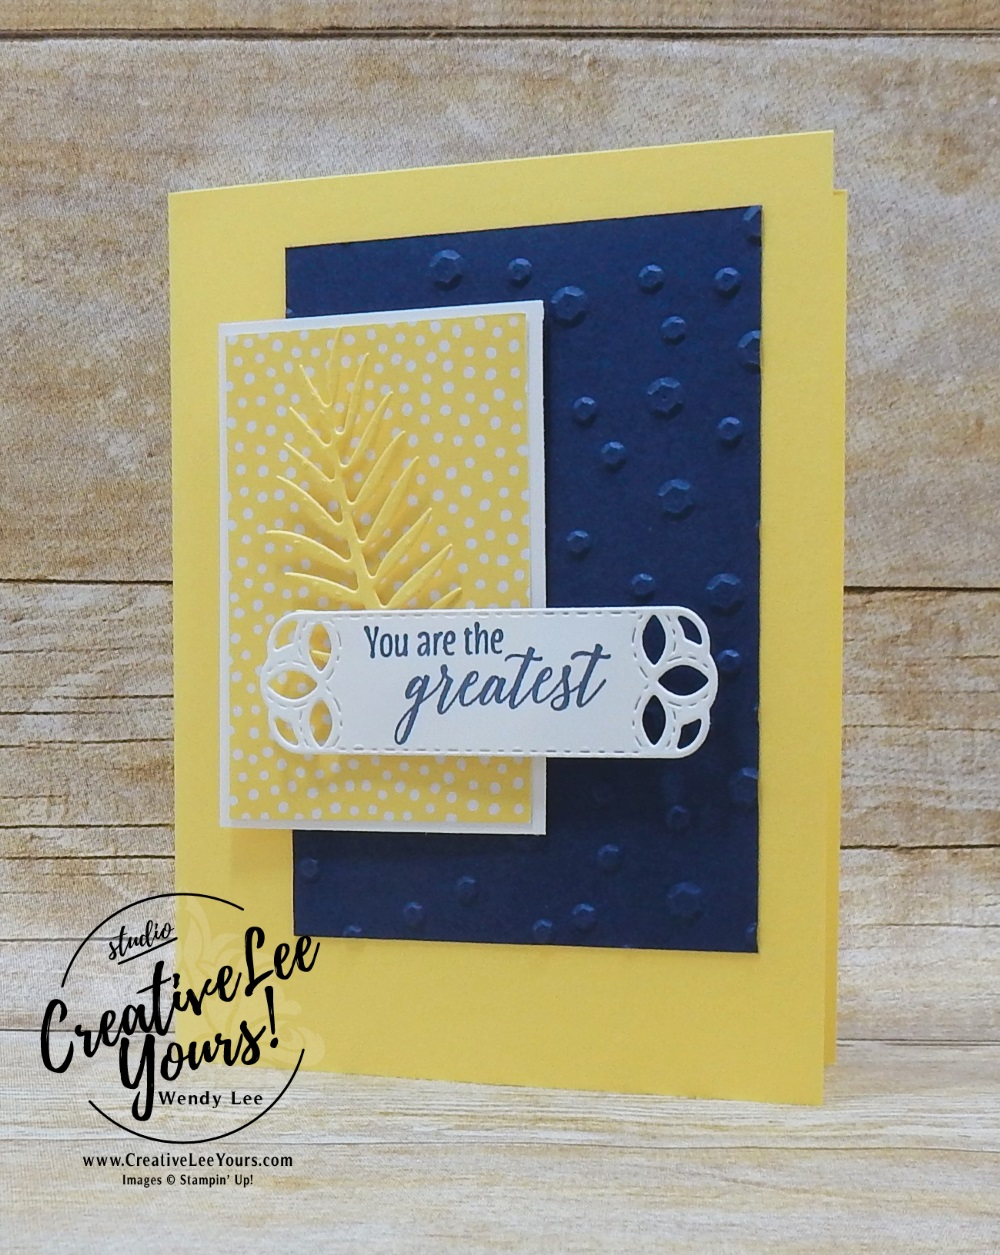 Versatile layout, Wendy Lee, stampin up, papercrafting, #creativeleeyours, creativelyyours, creative-lee yous, SU, #loveitchopit,You Are The Greatest, cardmaking, handmade card, rubber stamps, stamping, stampin up, SU cards, birthday, tropical chic stamp set, thank you, friend, paper share